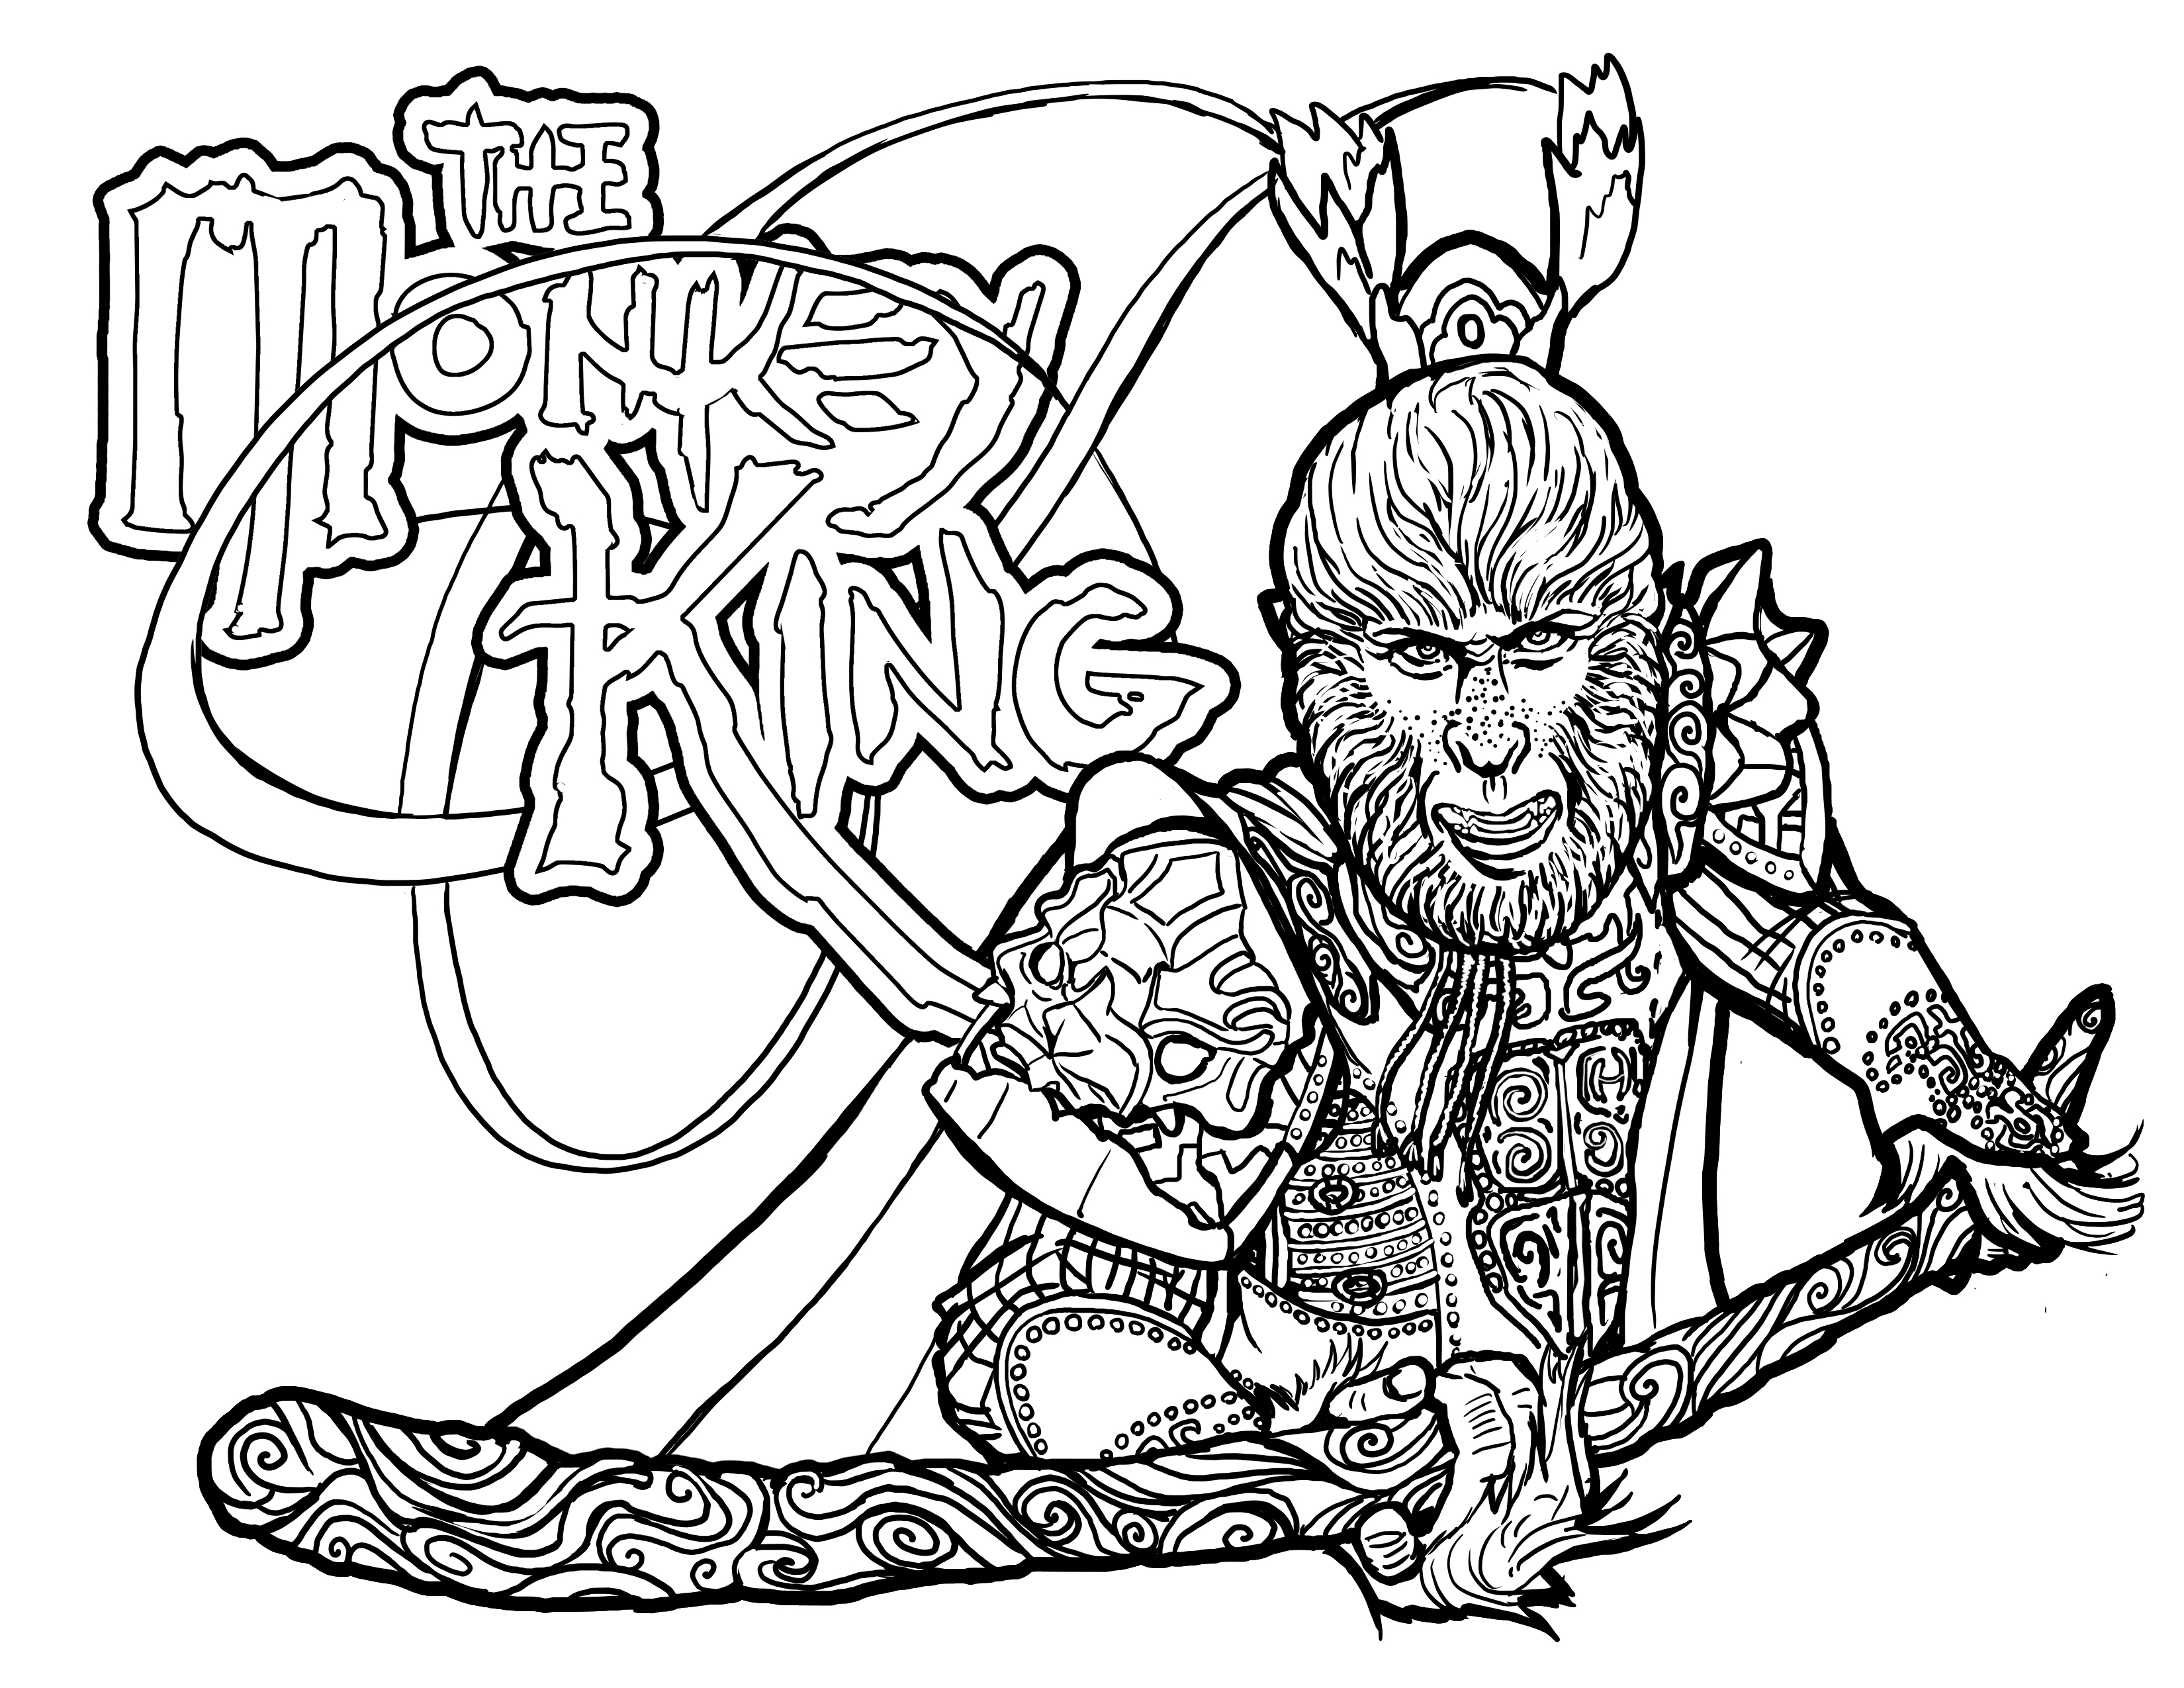 Coloring Pages The Official World Of The Monkey King Join The